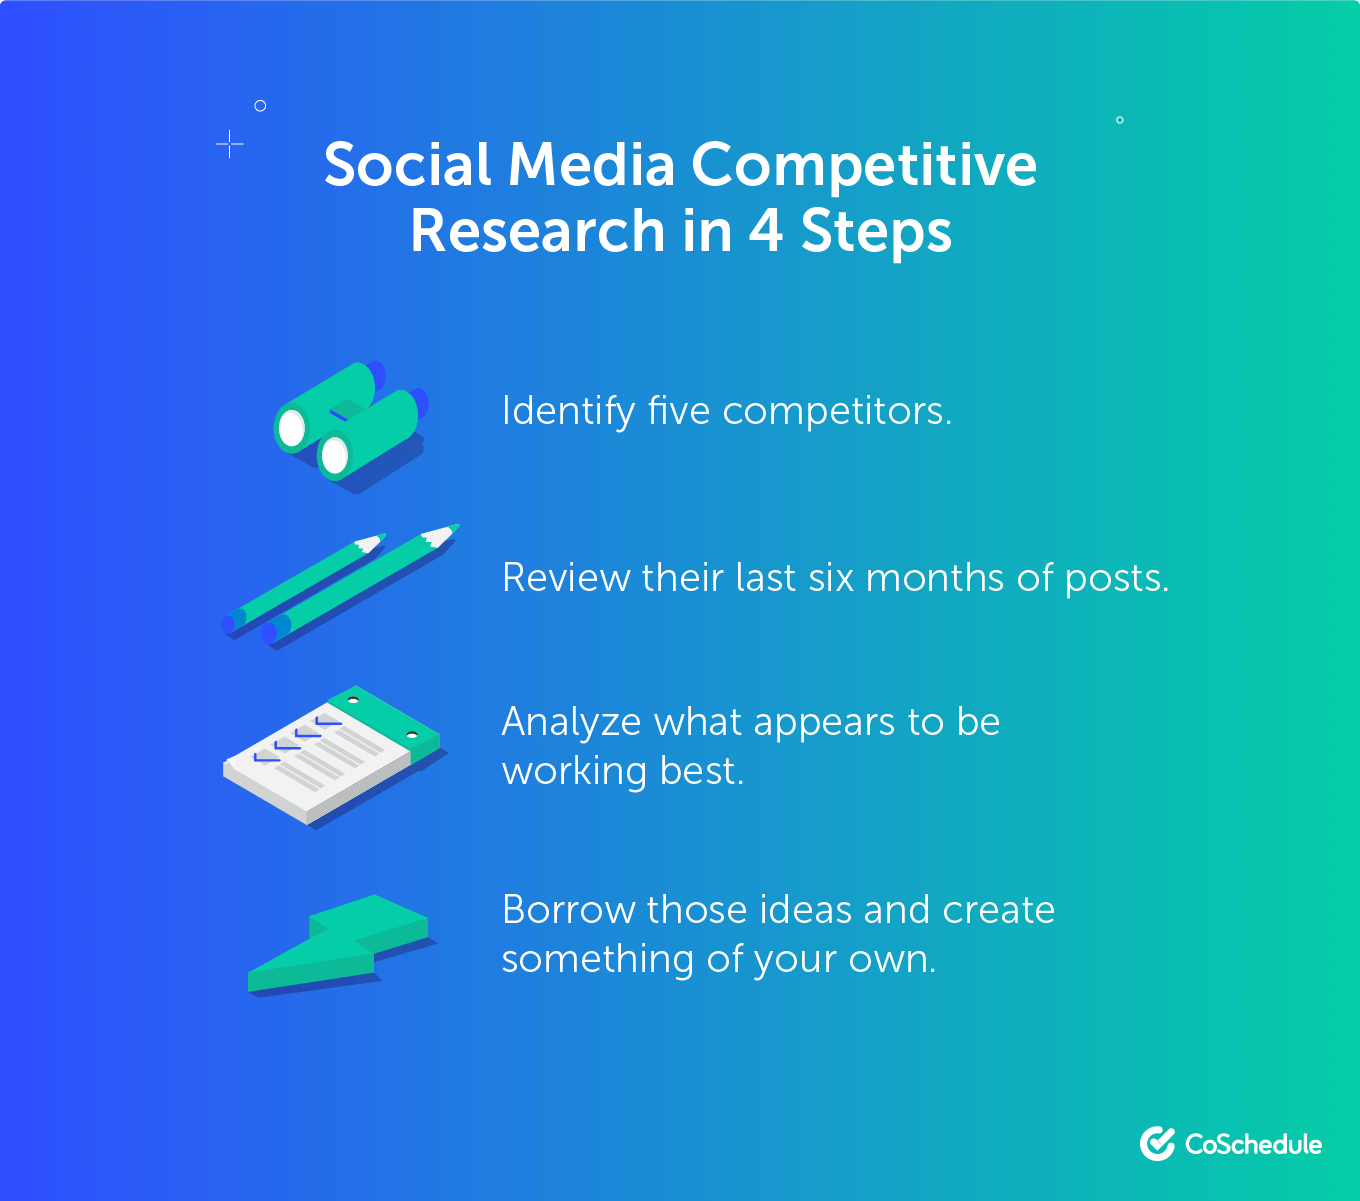 Social Media Competitive Research in 4 Steps